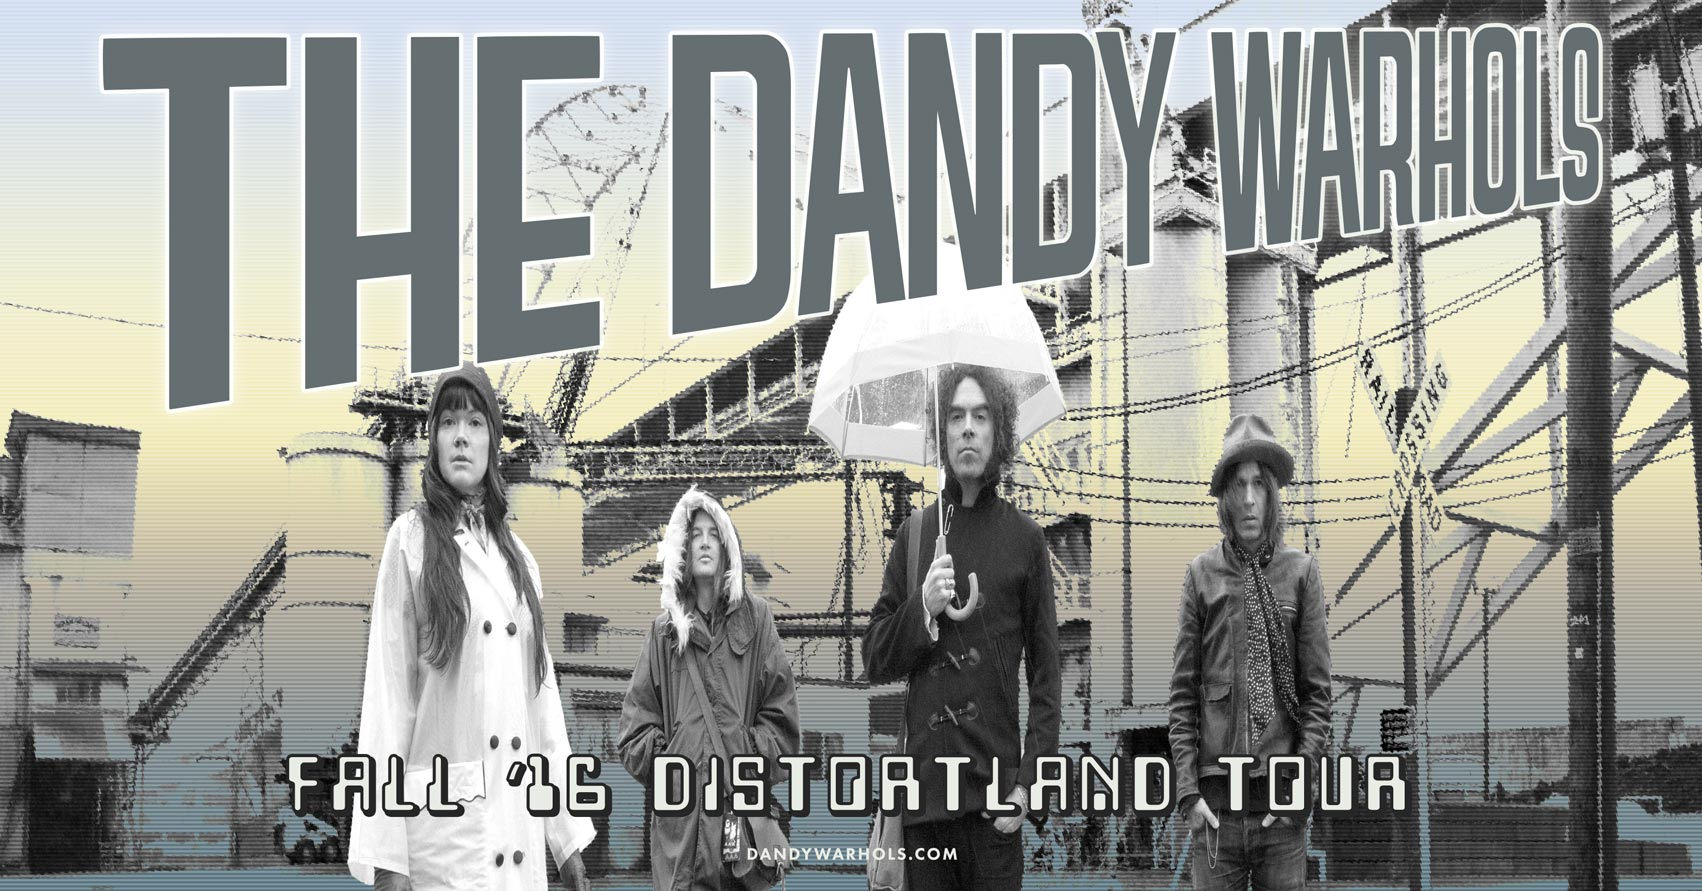 The Dandy Warhols - Fall '16